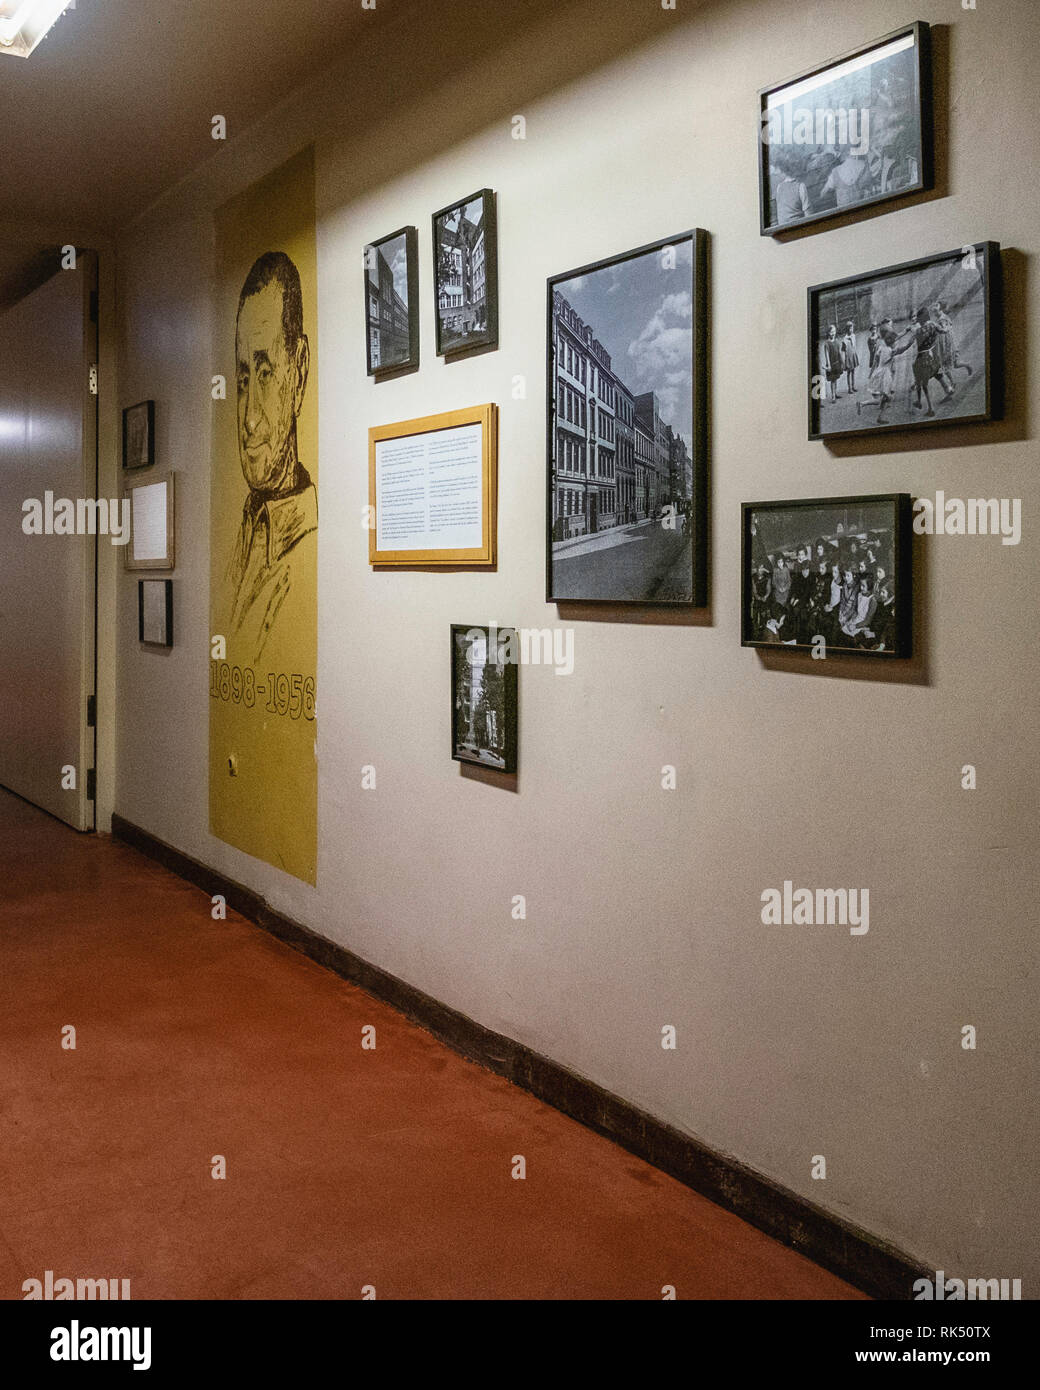 Berlin,Mitte. Passage & old photographs of former Jewish Girls' School in Auguststrasse that now houses restaurants & contemporay art galleries - Stock Image